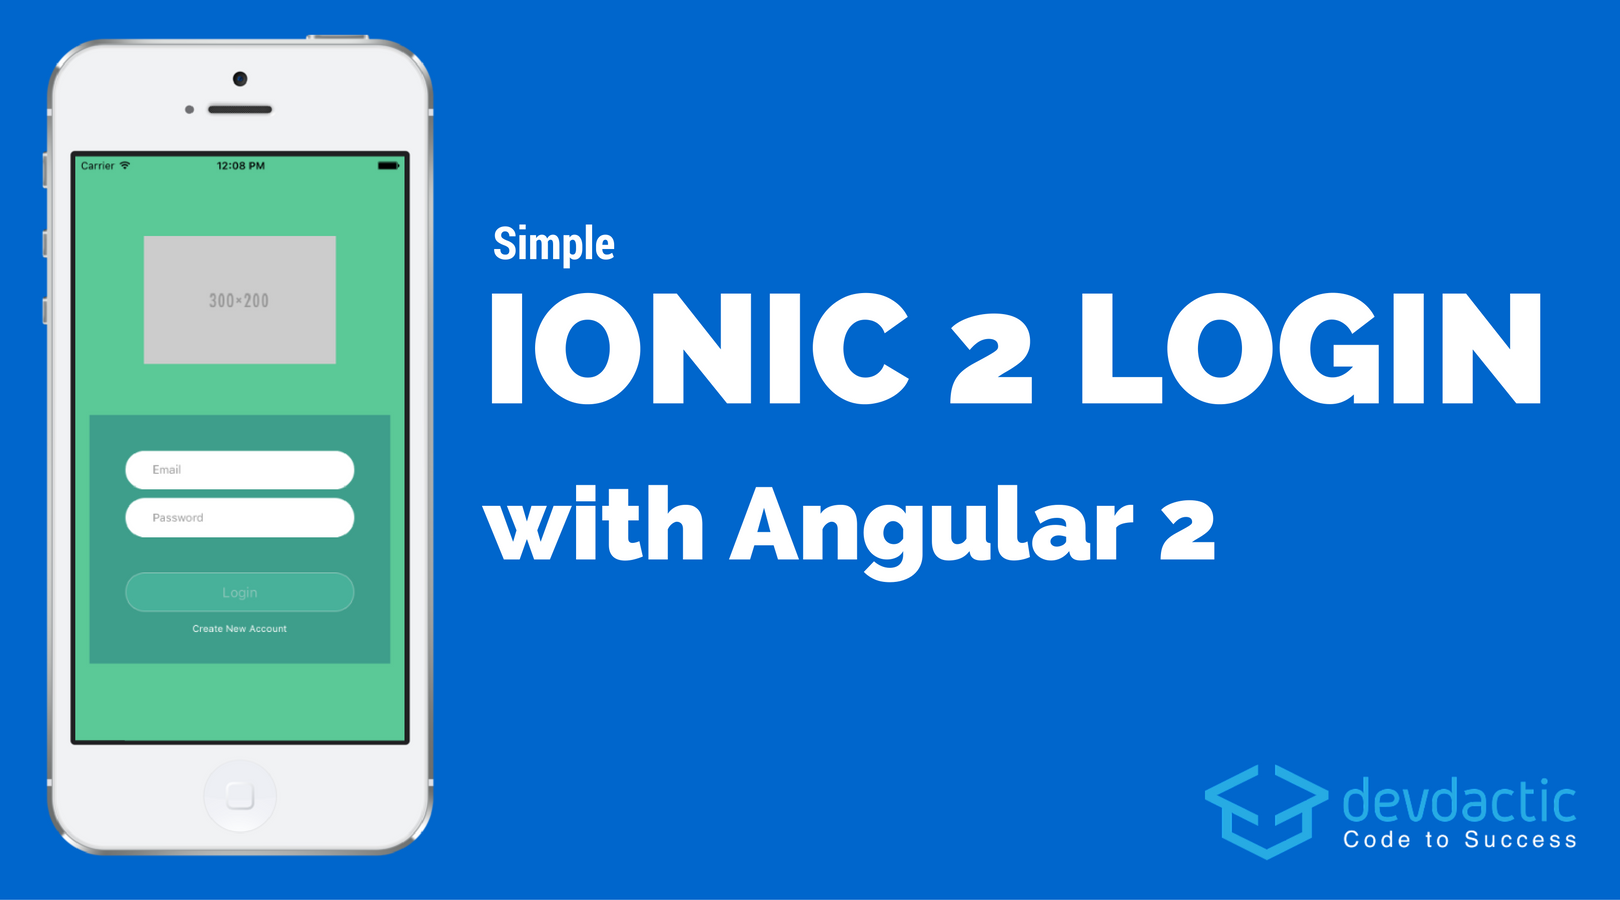 simple ionic login with angular 2 devdactic